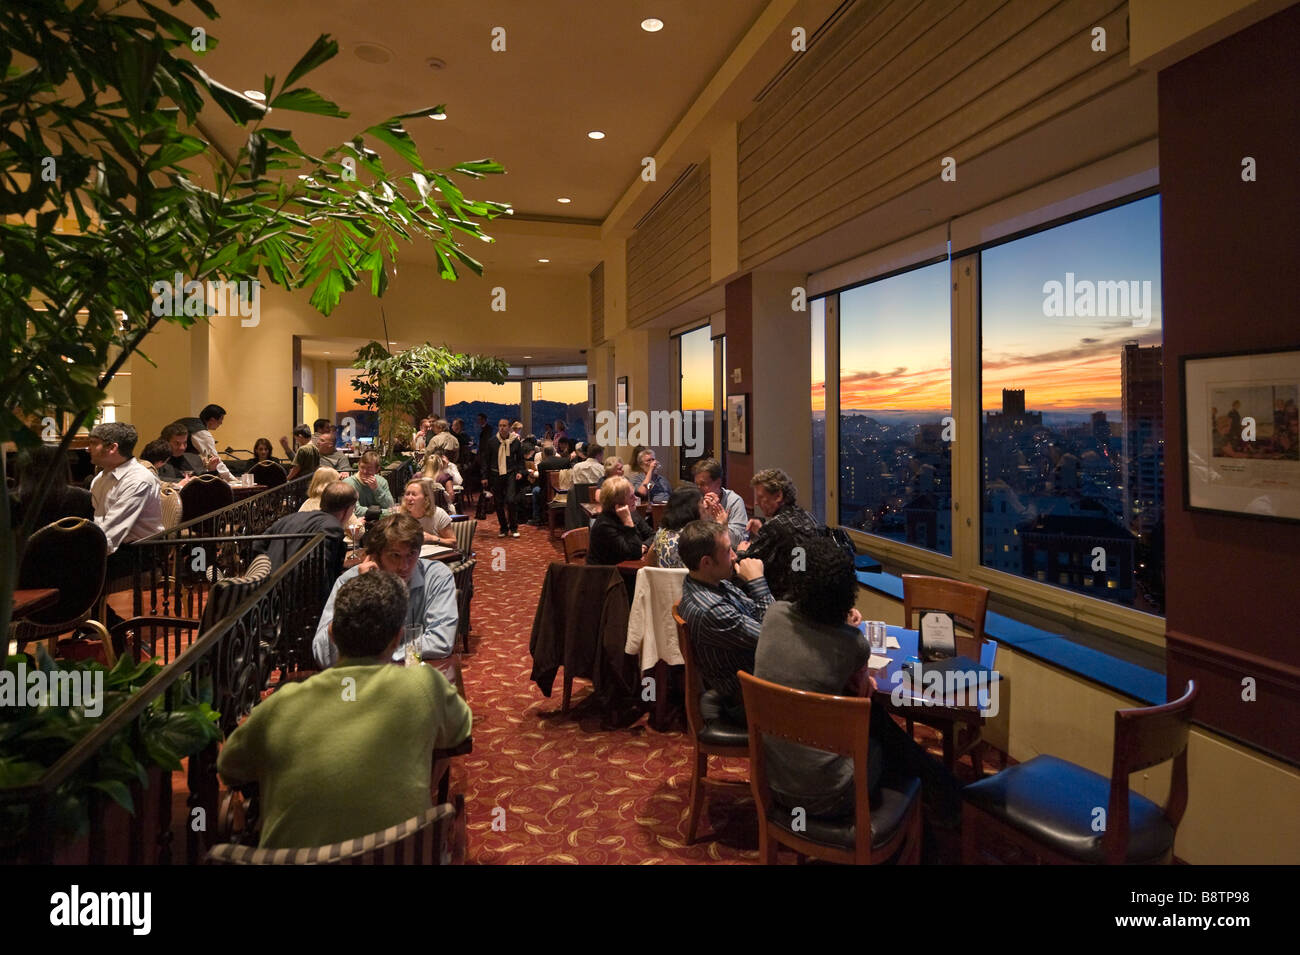 Top of the Mark rooftop bar at sunset, Intercontinental Mark Hopkins Hotel, Nob Hill, San Francisco, California, Stock Photo